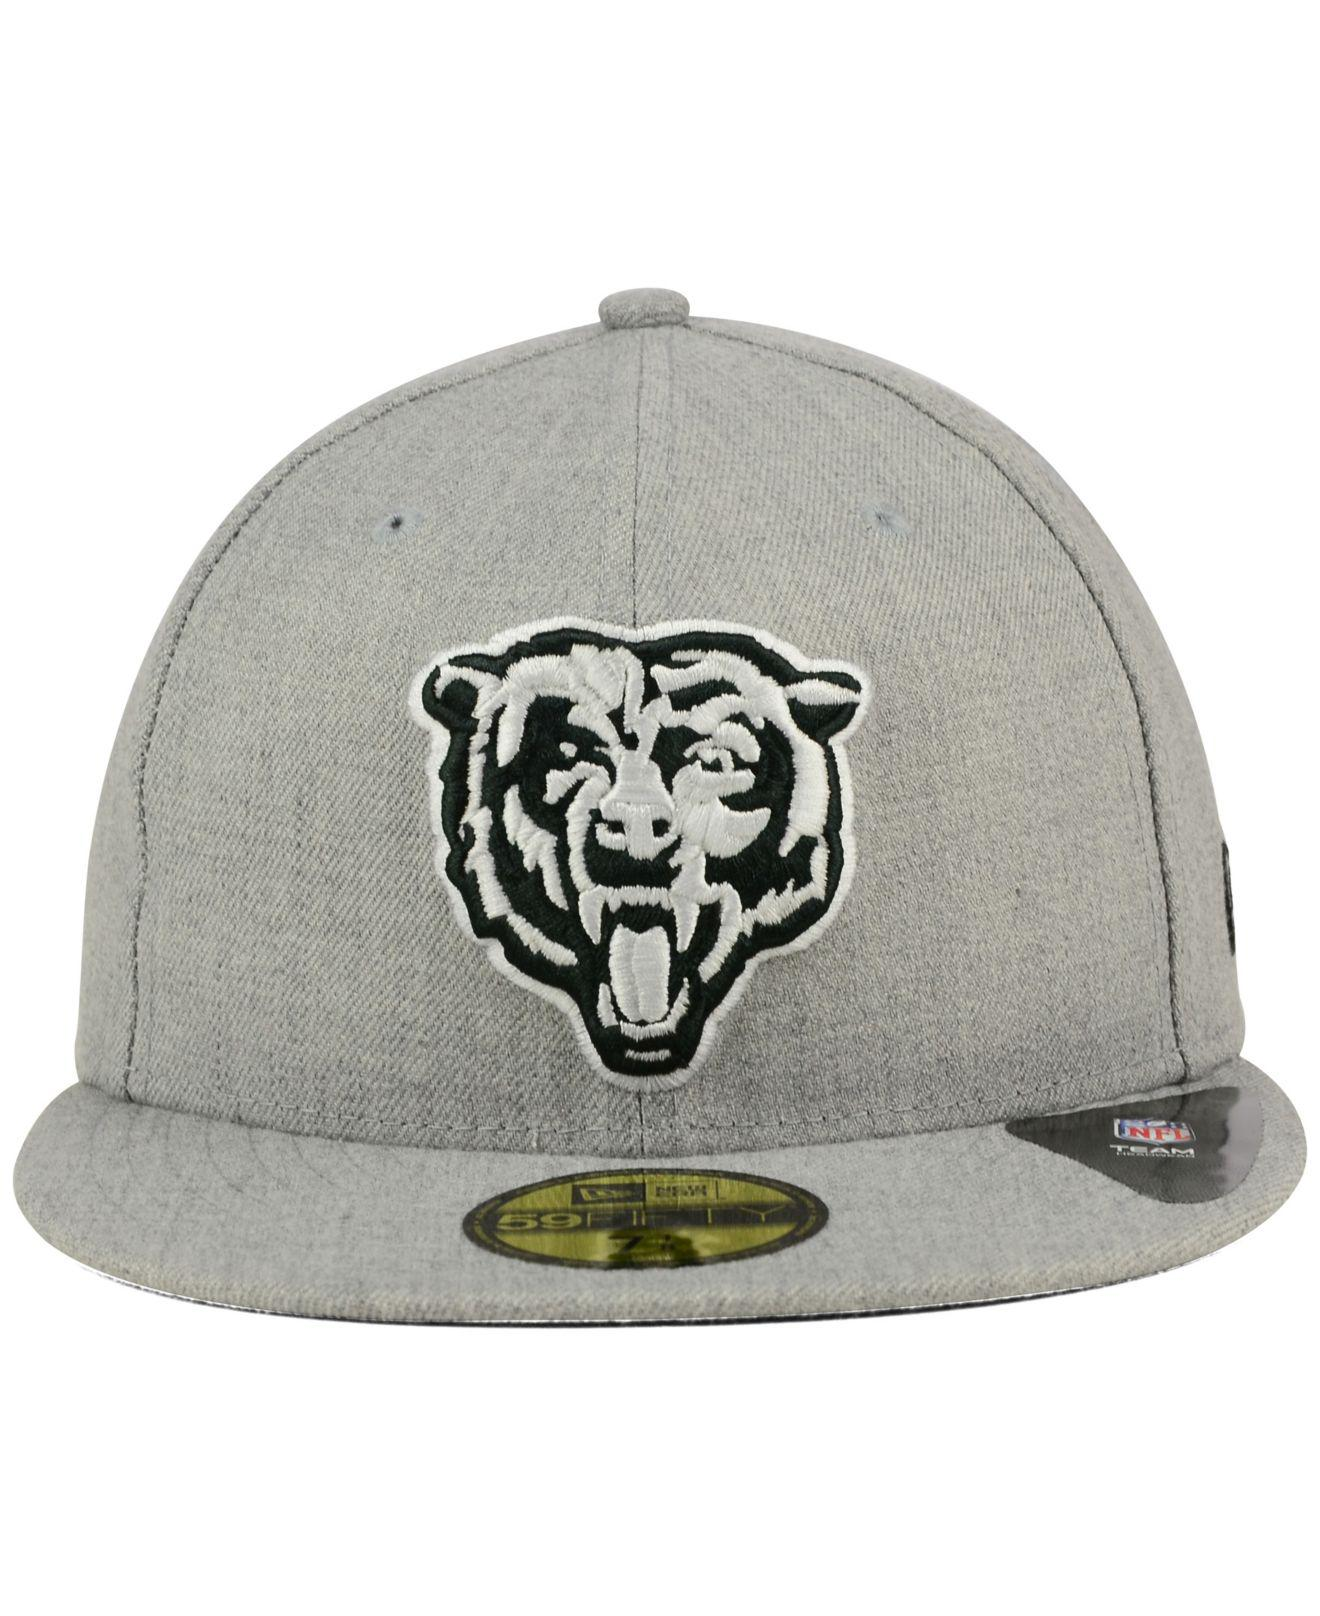 7947aa44f18 Lyst - KTZ Chicago Bears Heather Black White 59fifty Cap in Gray for Men